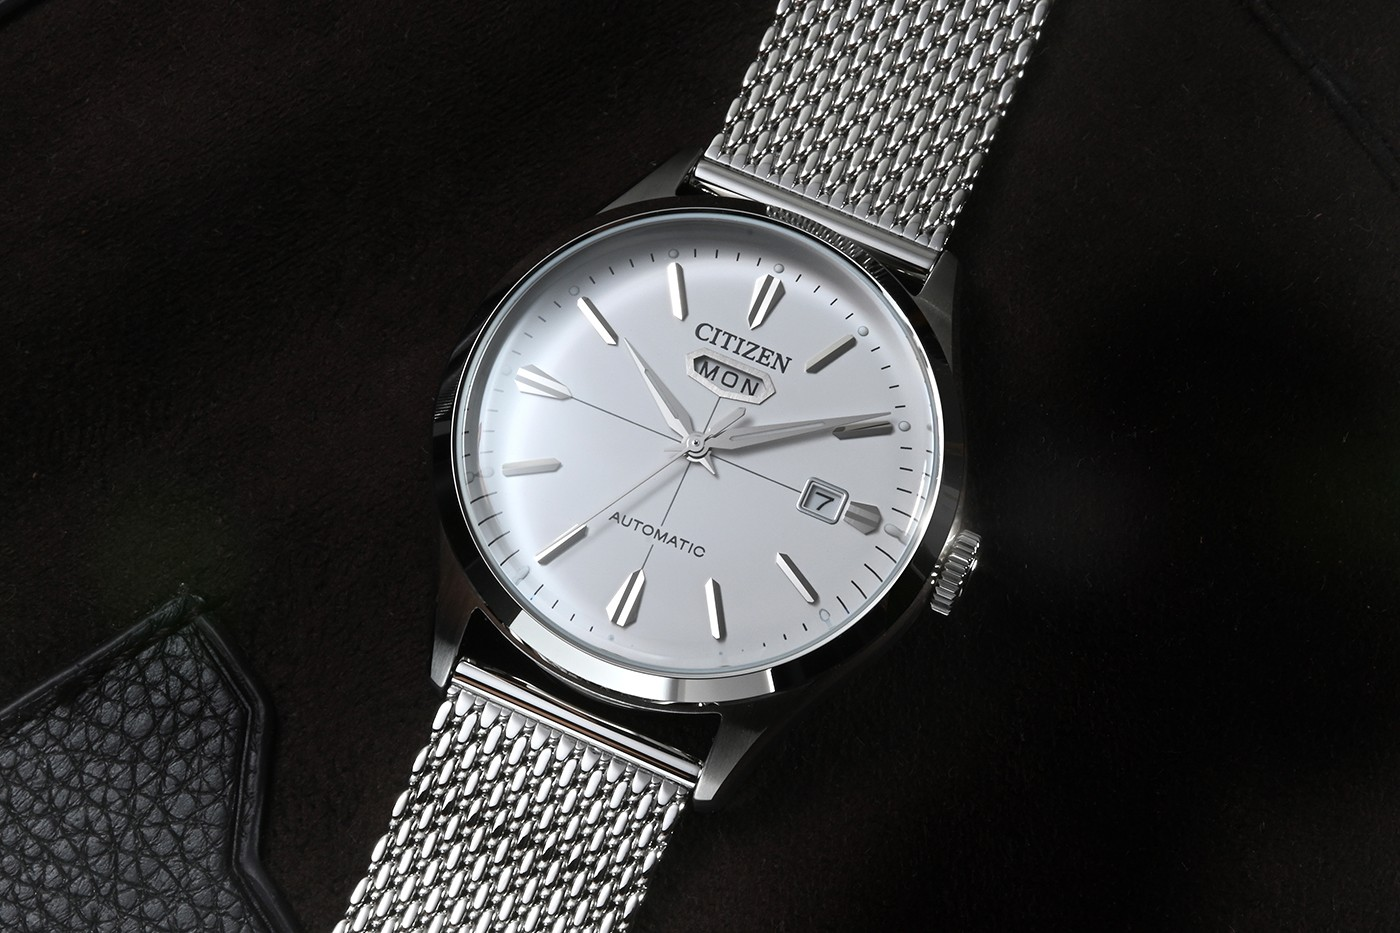 Citizen Crystal Seven C7 Watch Collection 2020 1965 timepieces active dress formal casual colorways price style asia